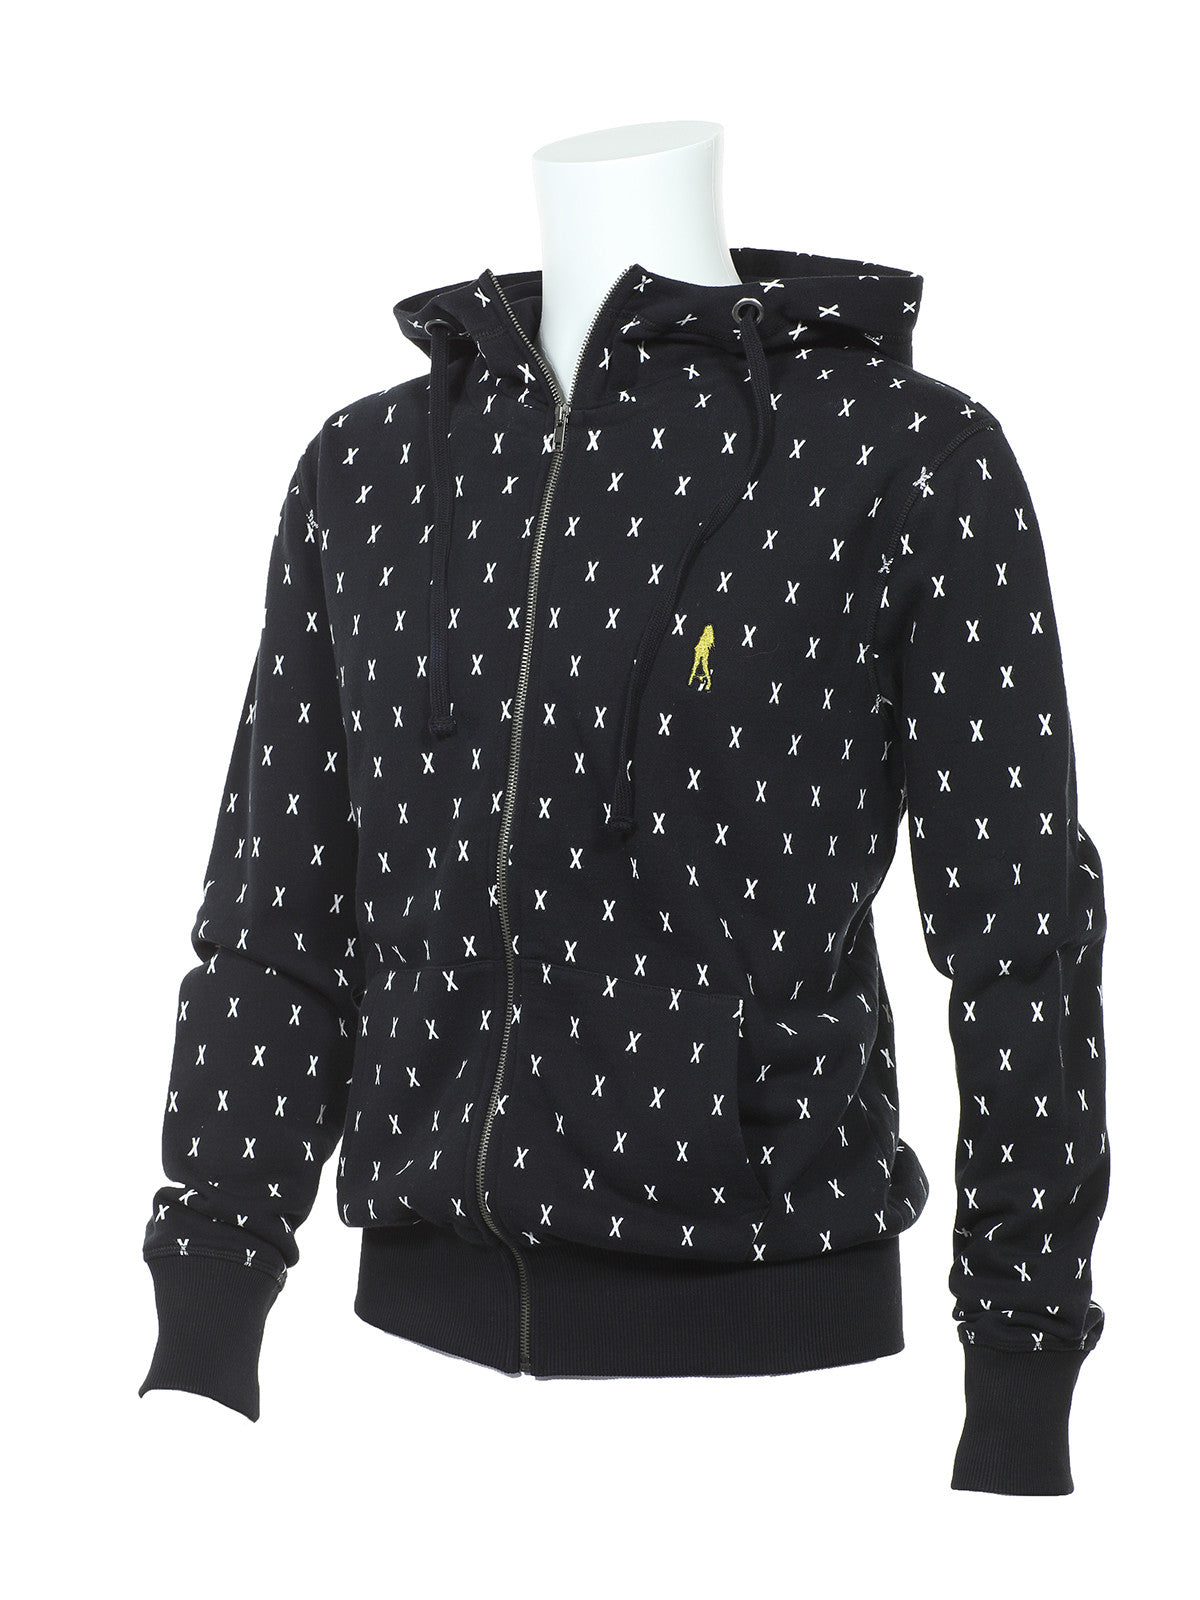 x monogram zip up hoodie plain jane homme. Black Bedroom Furniture Sets. Home Design Ideas